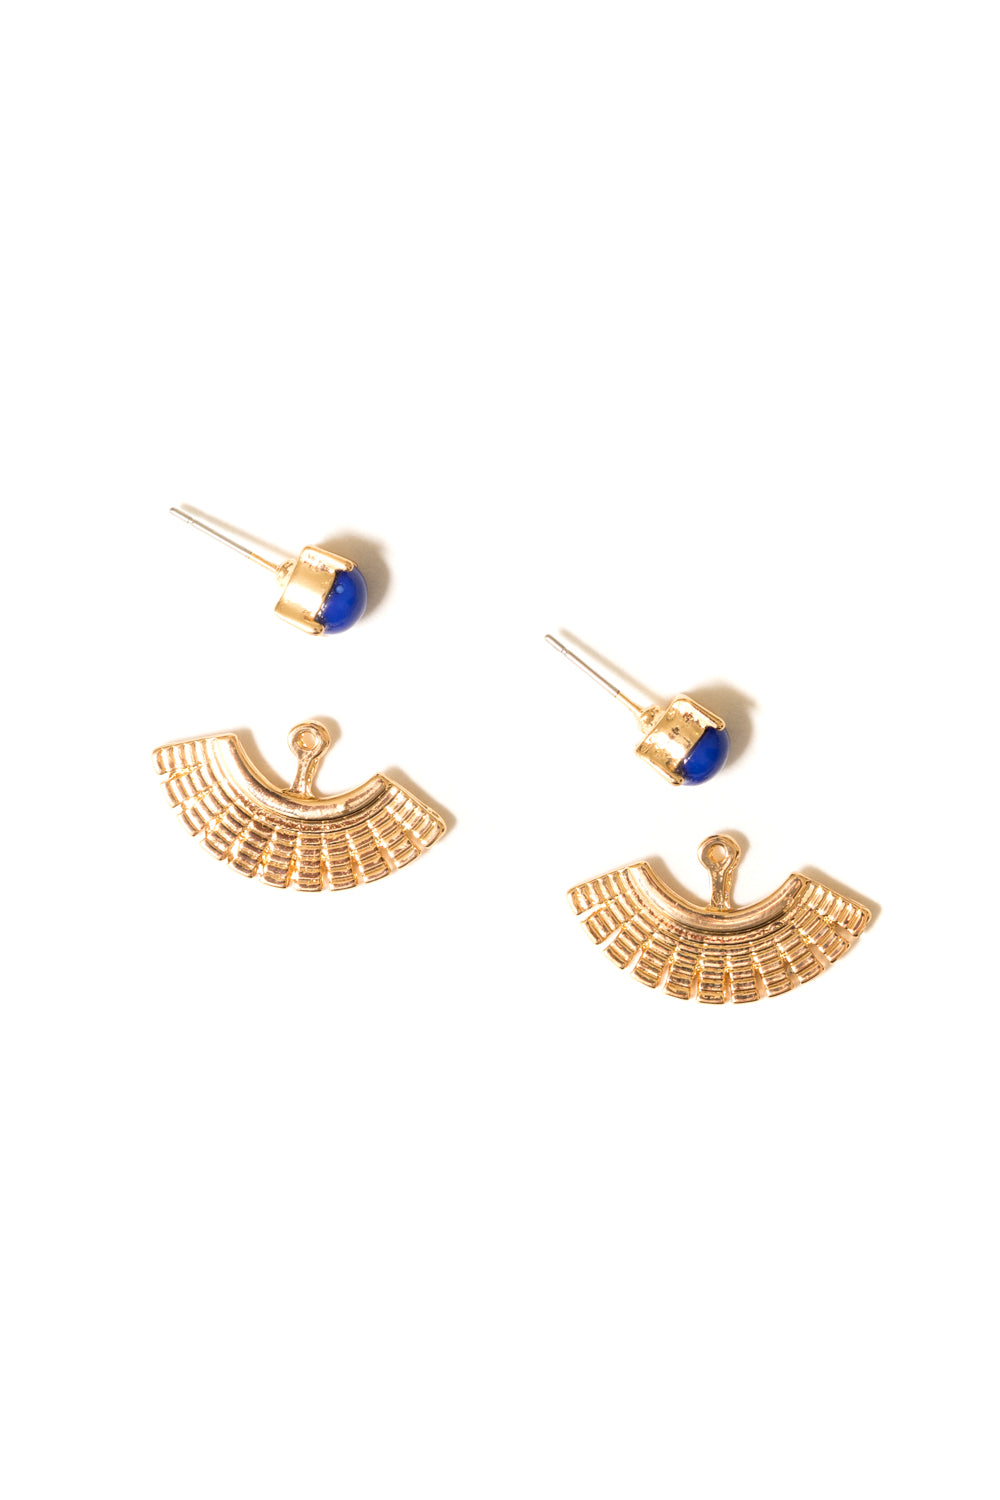 gold ear jackets with Blue stud earrings